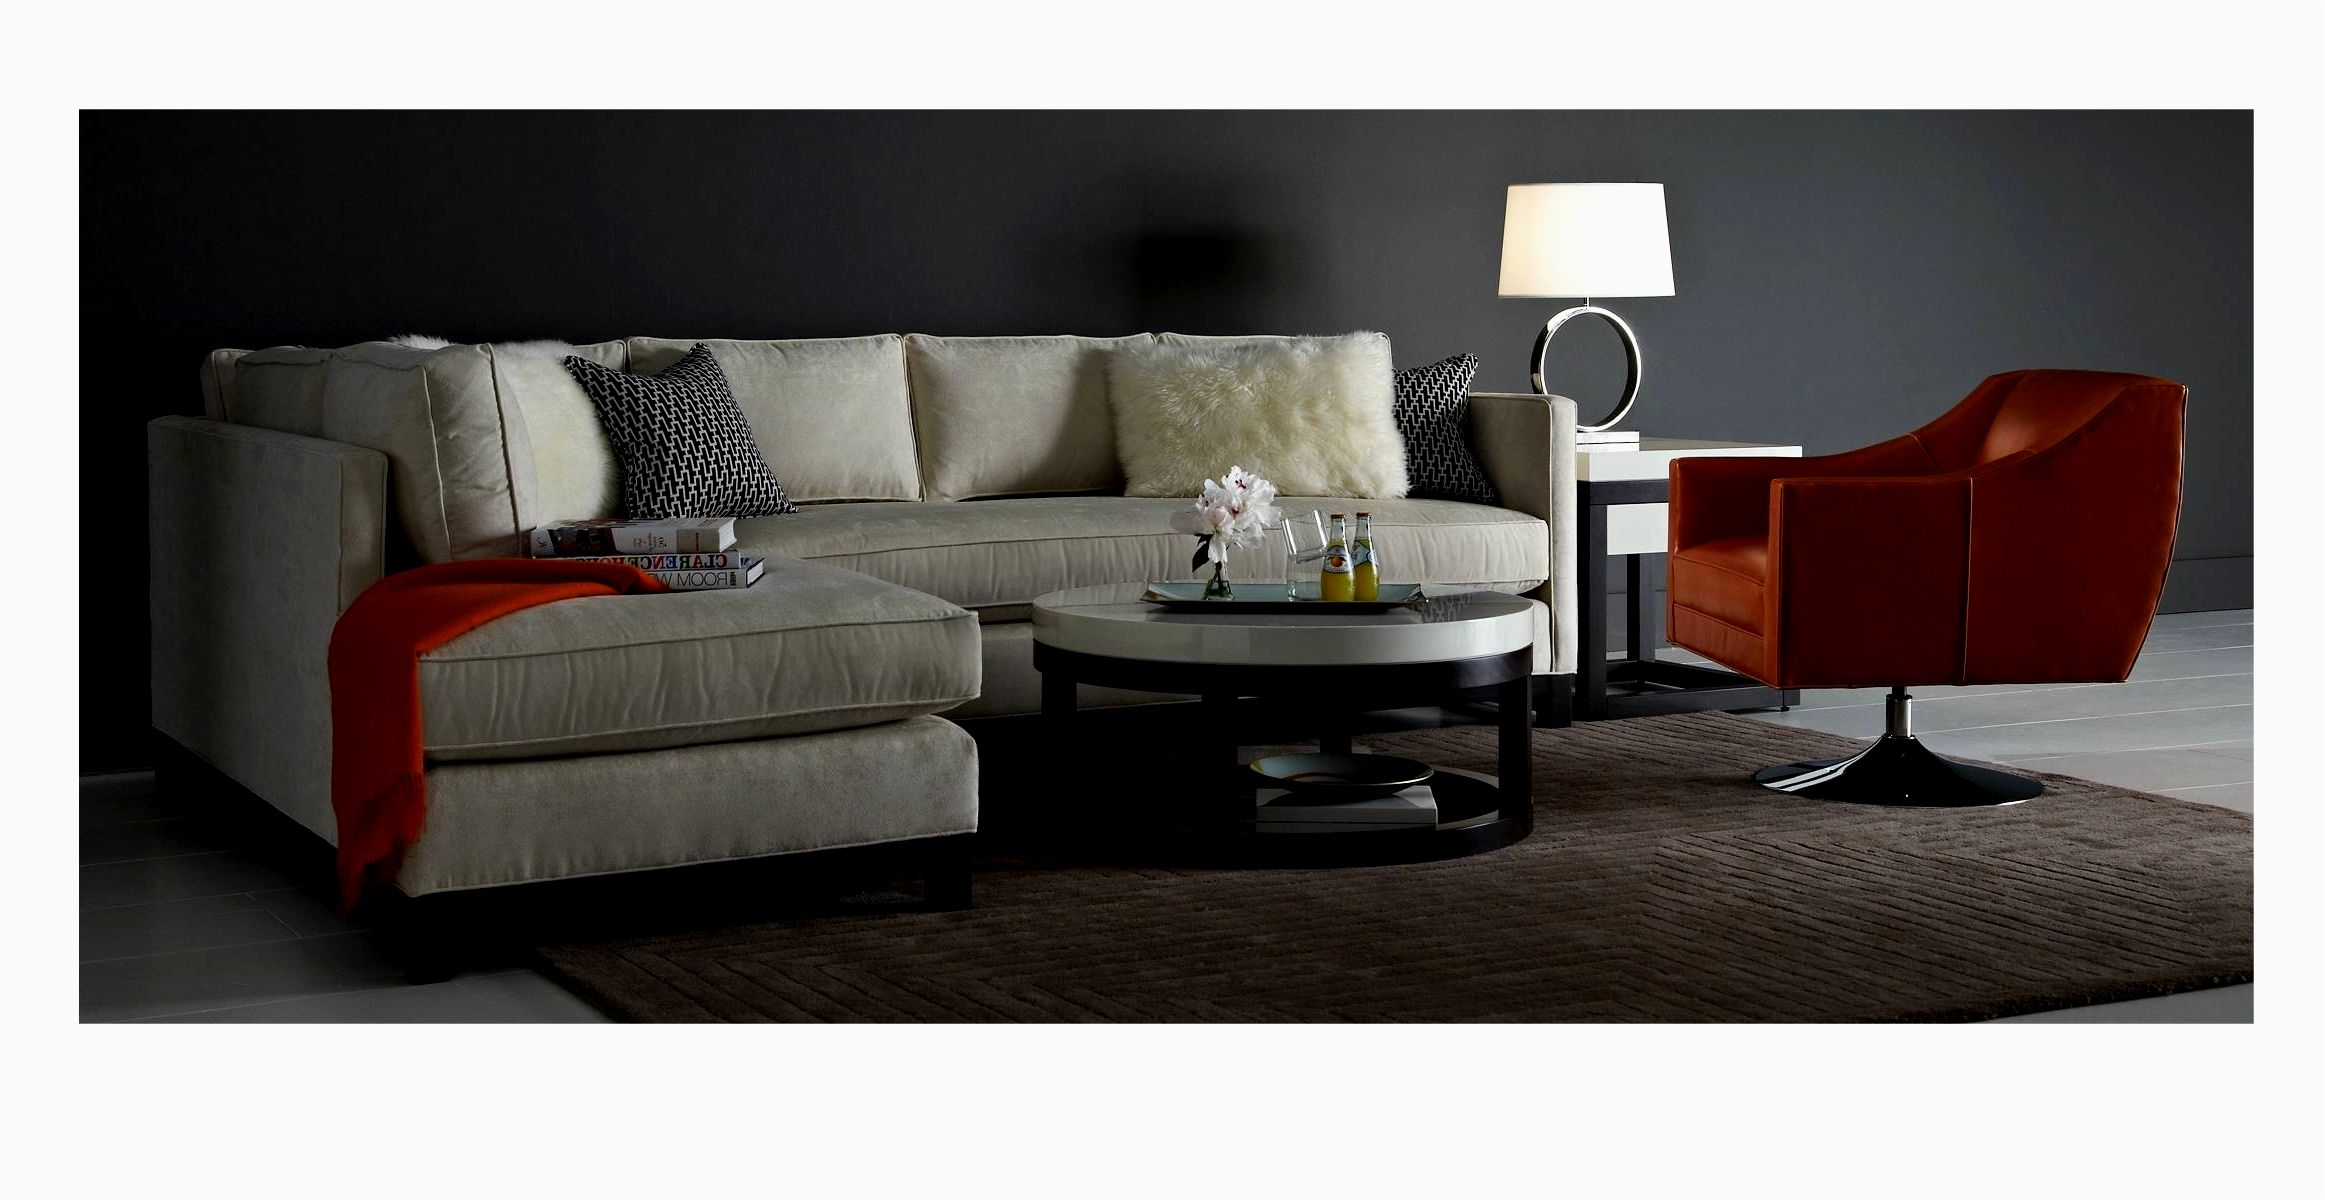 awesome mitchell gold sofa ideas-Sensational Mitchell Gold sofa Photograph